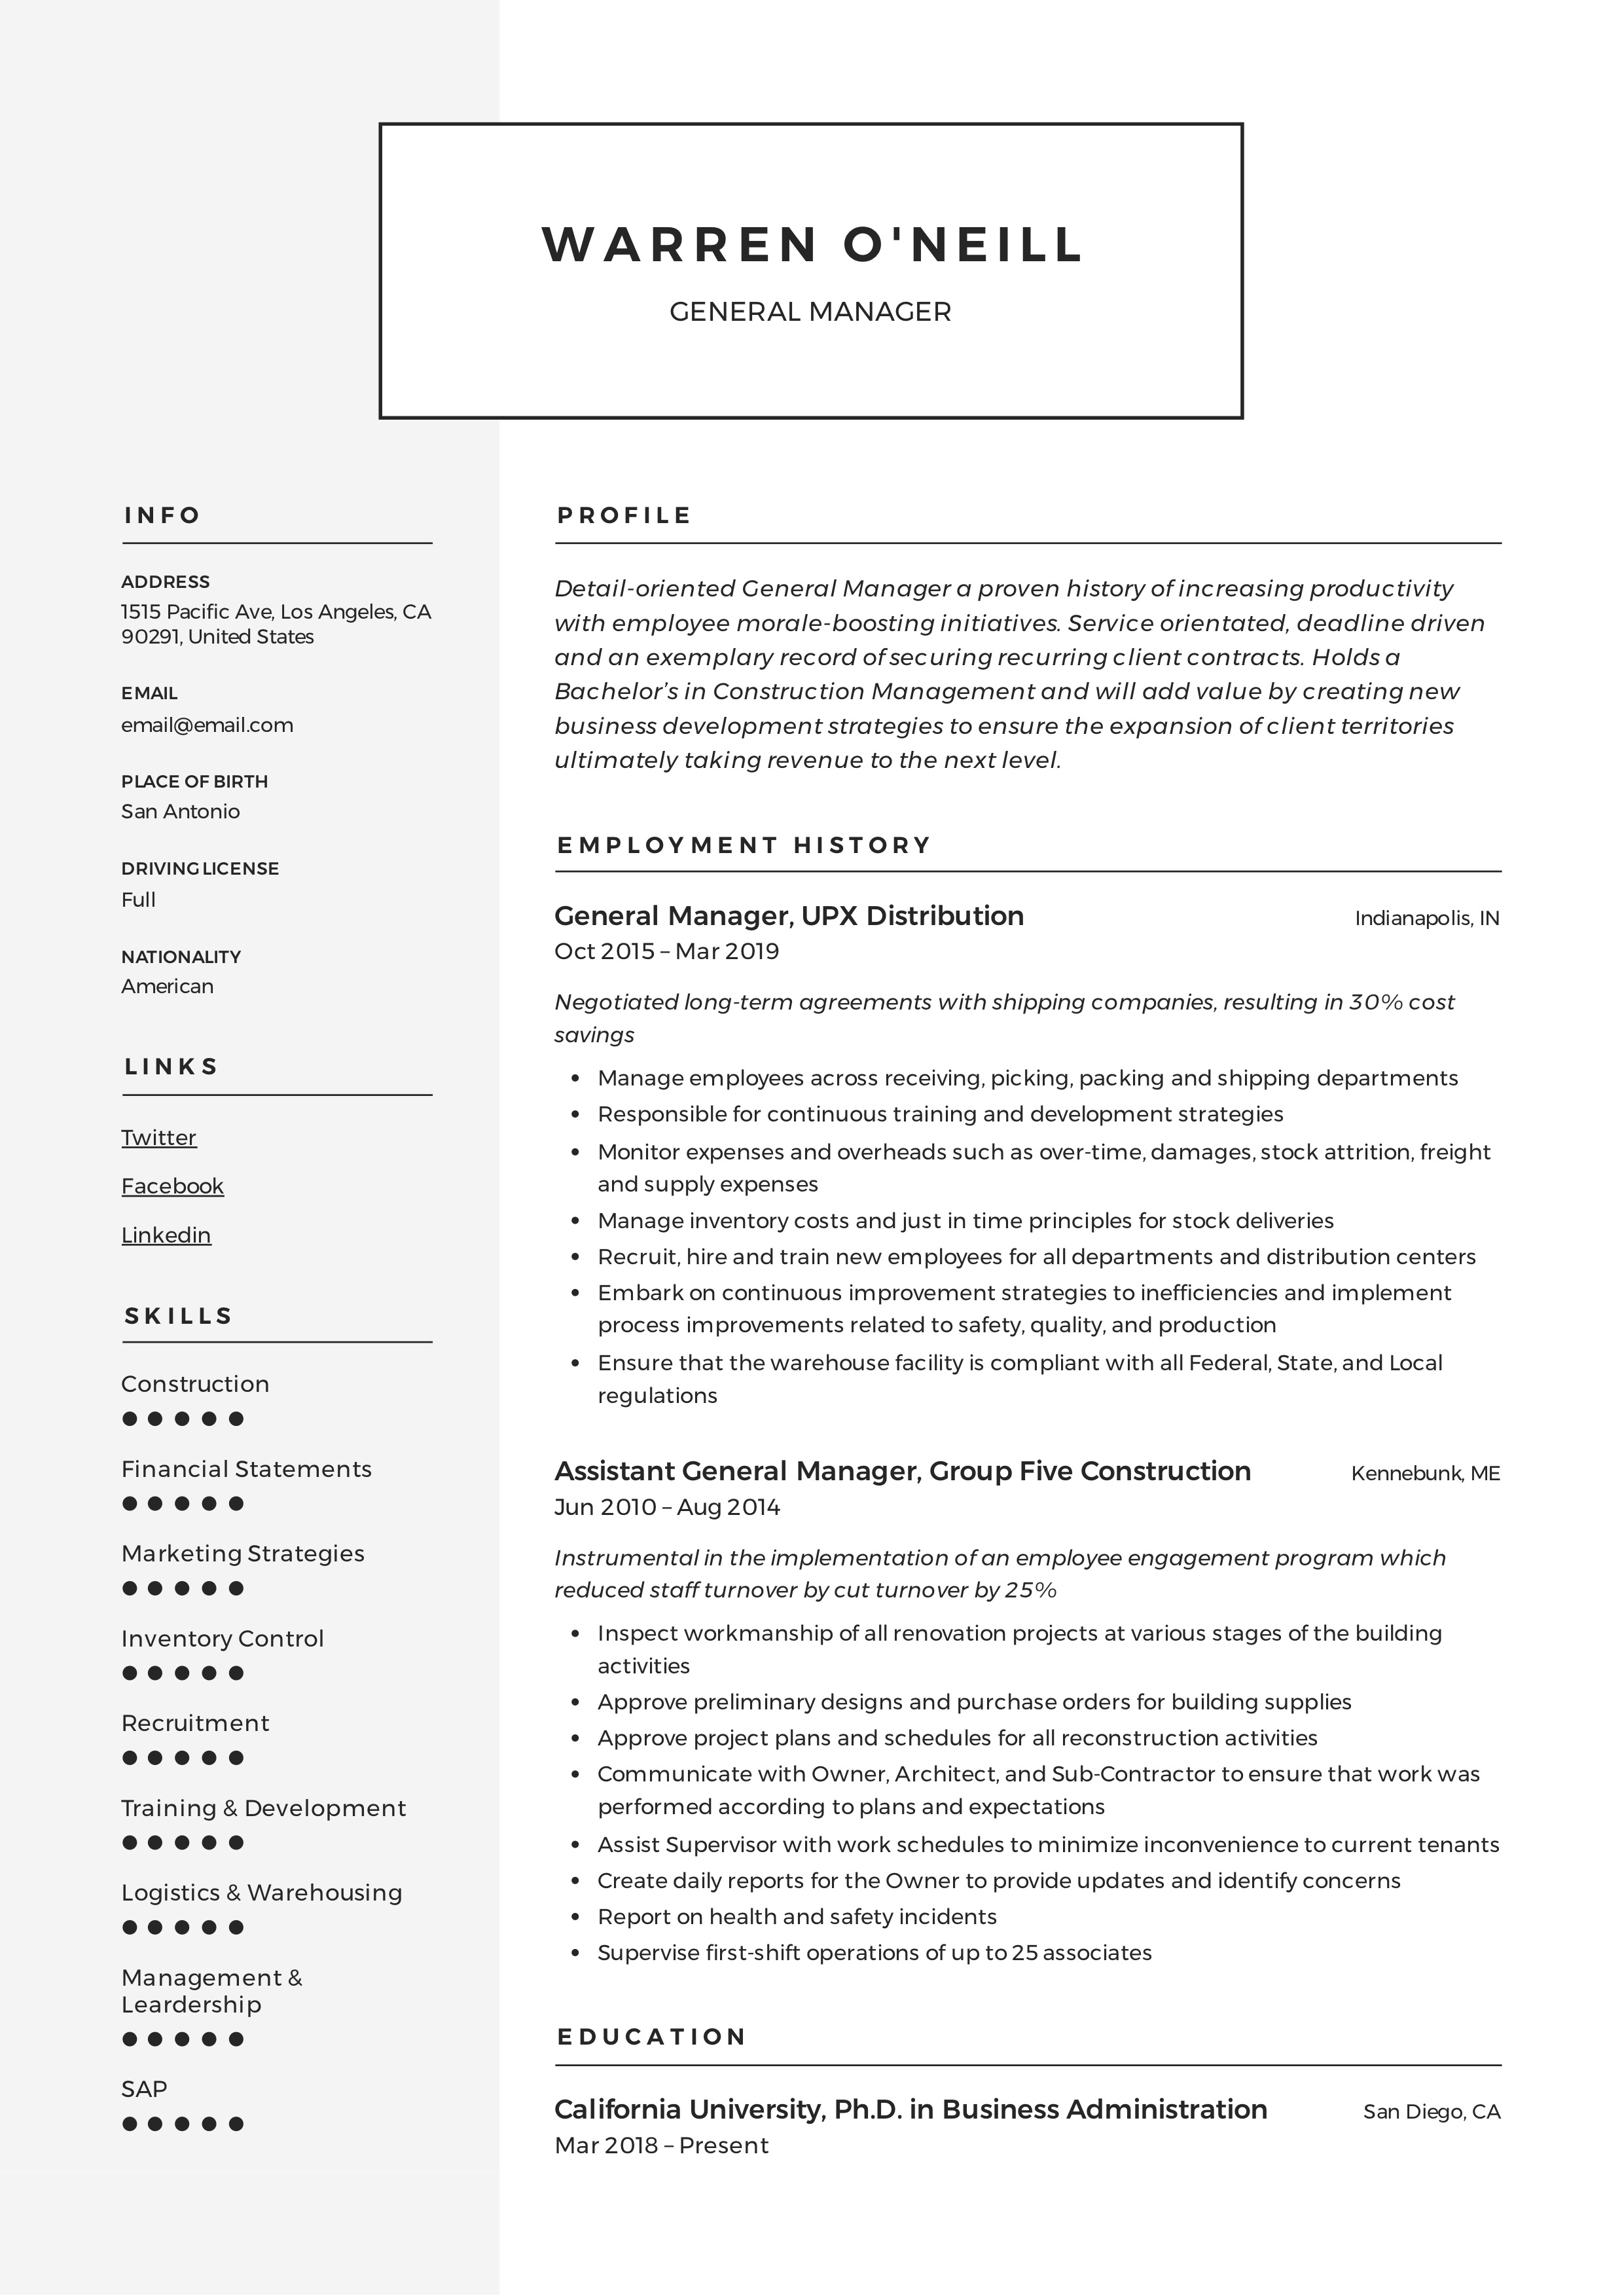 Warren_O_Neill_-_Resume_-_General_Manager (4)